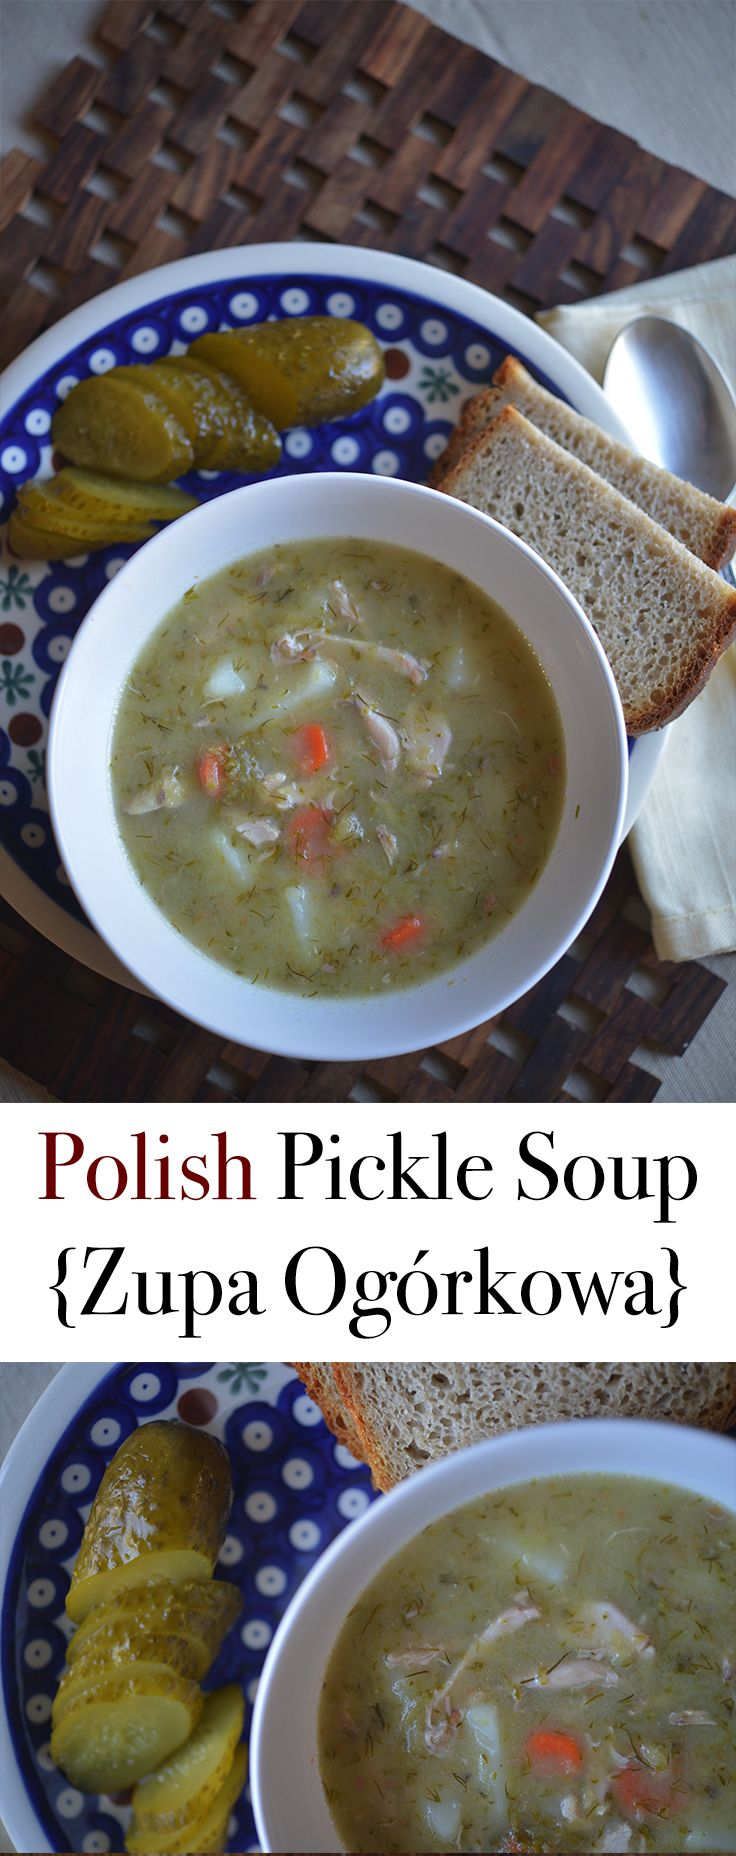 Polish Pickle Soup {Zupa Ogórkowa}, sour Polish soup, traditionally made with pickles in brine, easy to make and easy to follow recipe for this Polish favorite soup by Anna @polishyourkitchen.